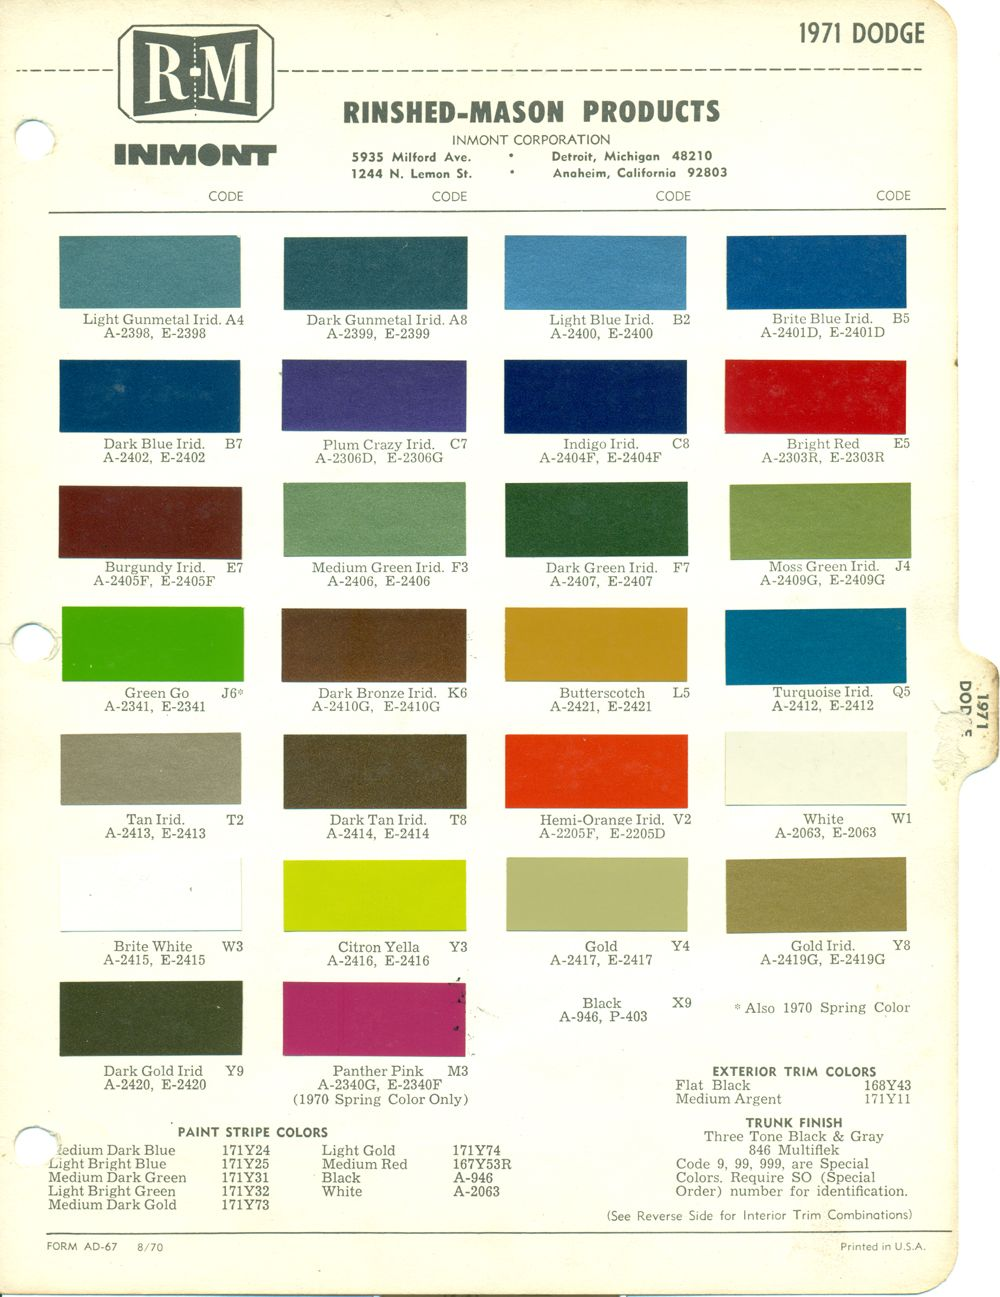 1971 DODGE COLOR CATALOG CHIP CHART | MOPAR | Dodge charger